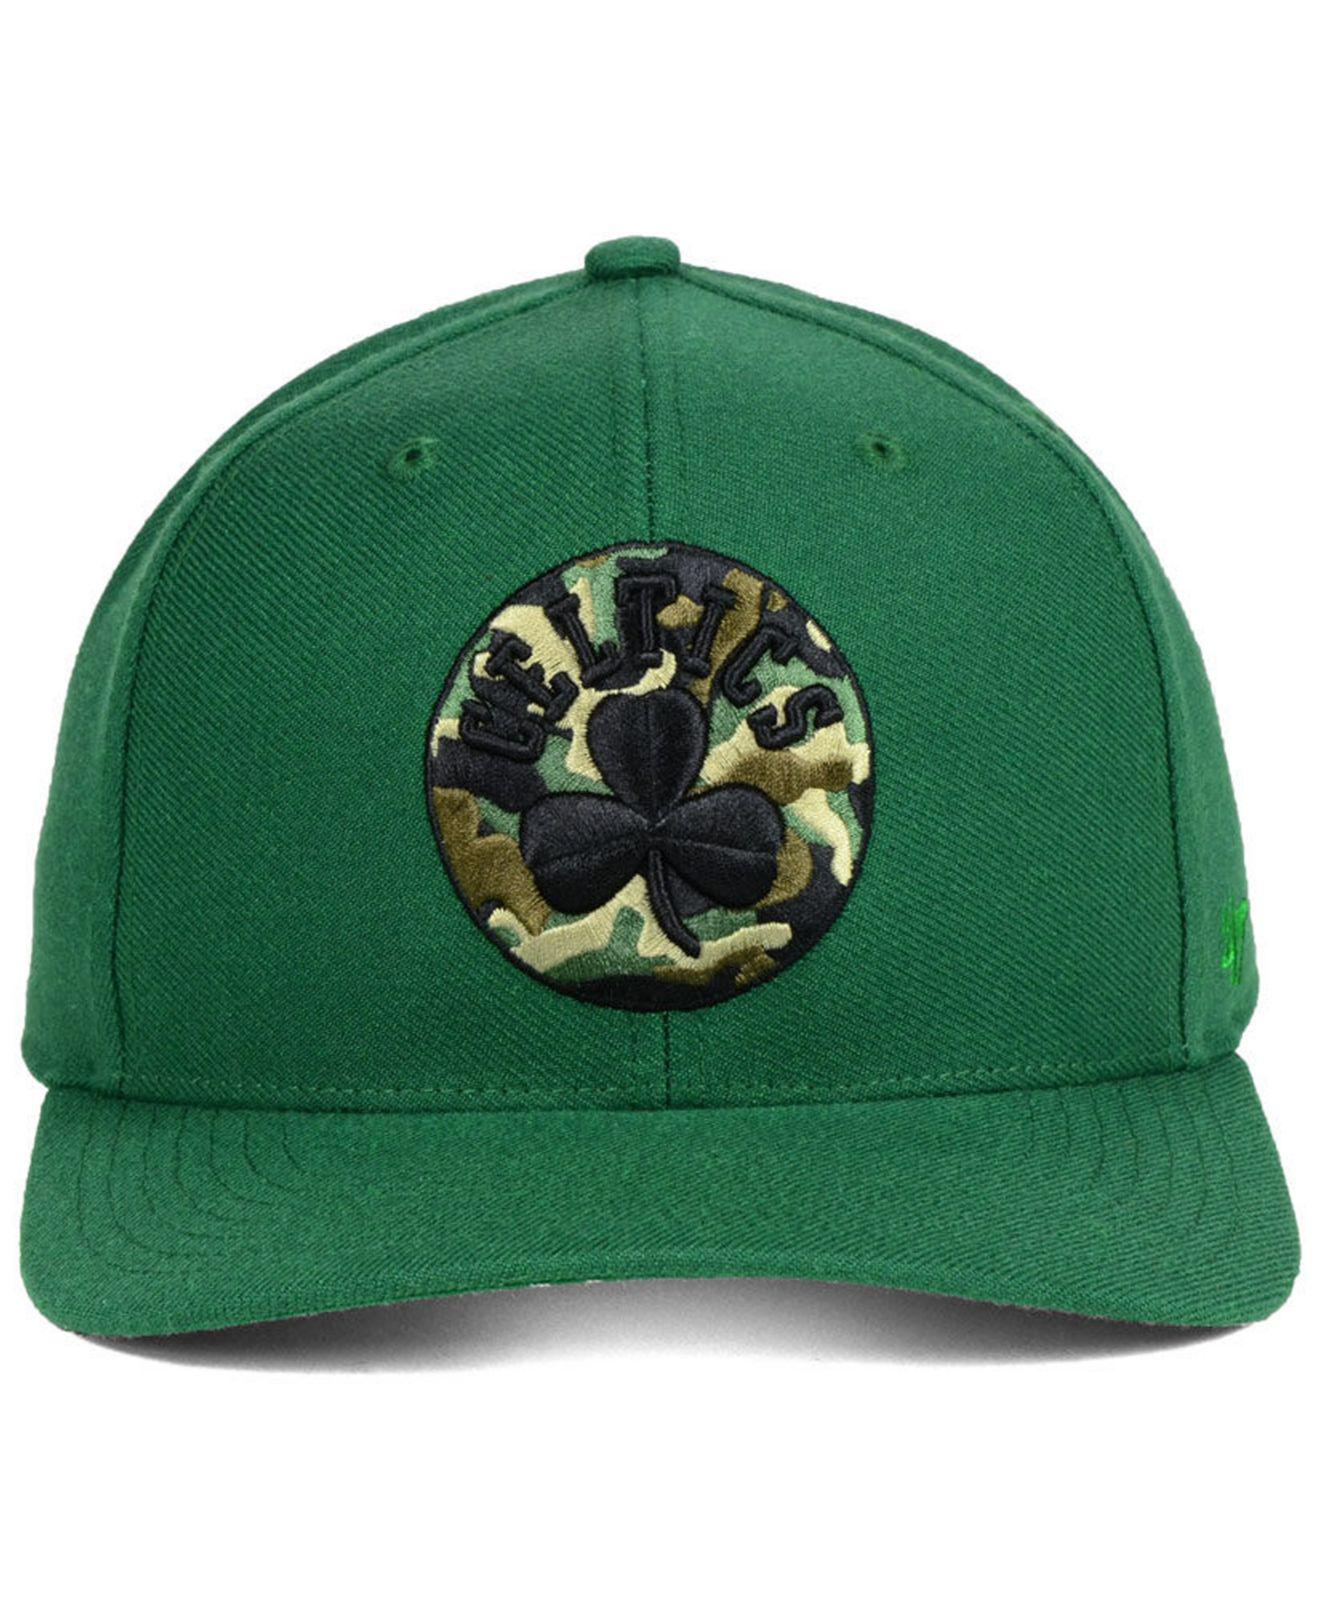 Lyst - 47 Brand Boston Celtics Camfill Mvp Cap in Green for Men a880ac2260d9